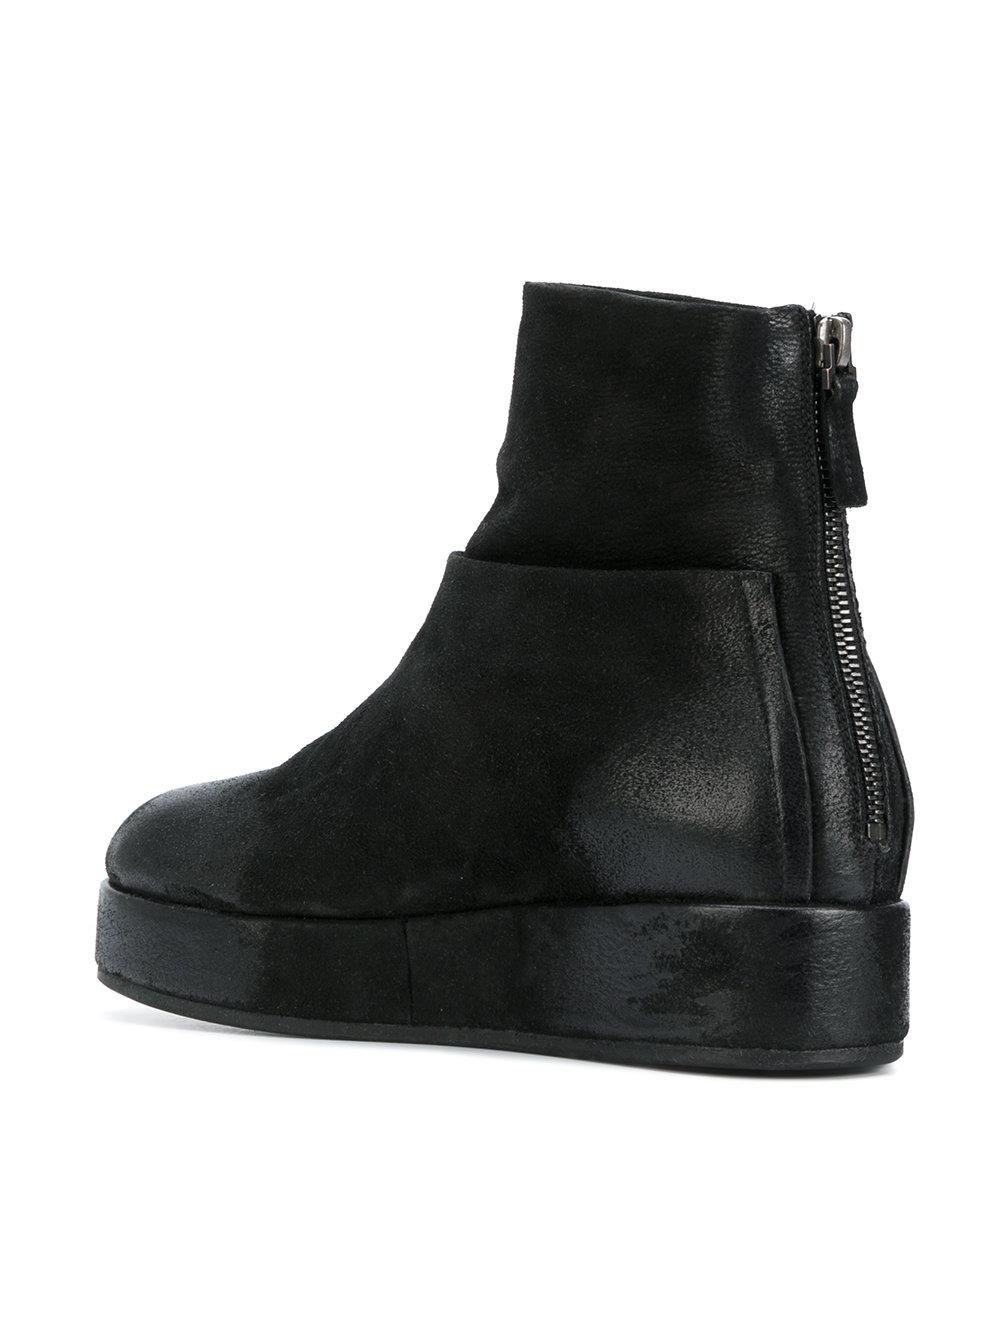 Mars 232 Ll Leather Layered Platform Boots In Black Lyst